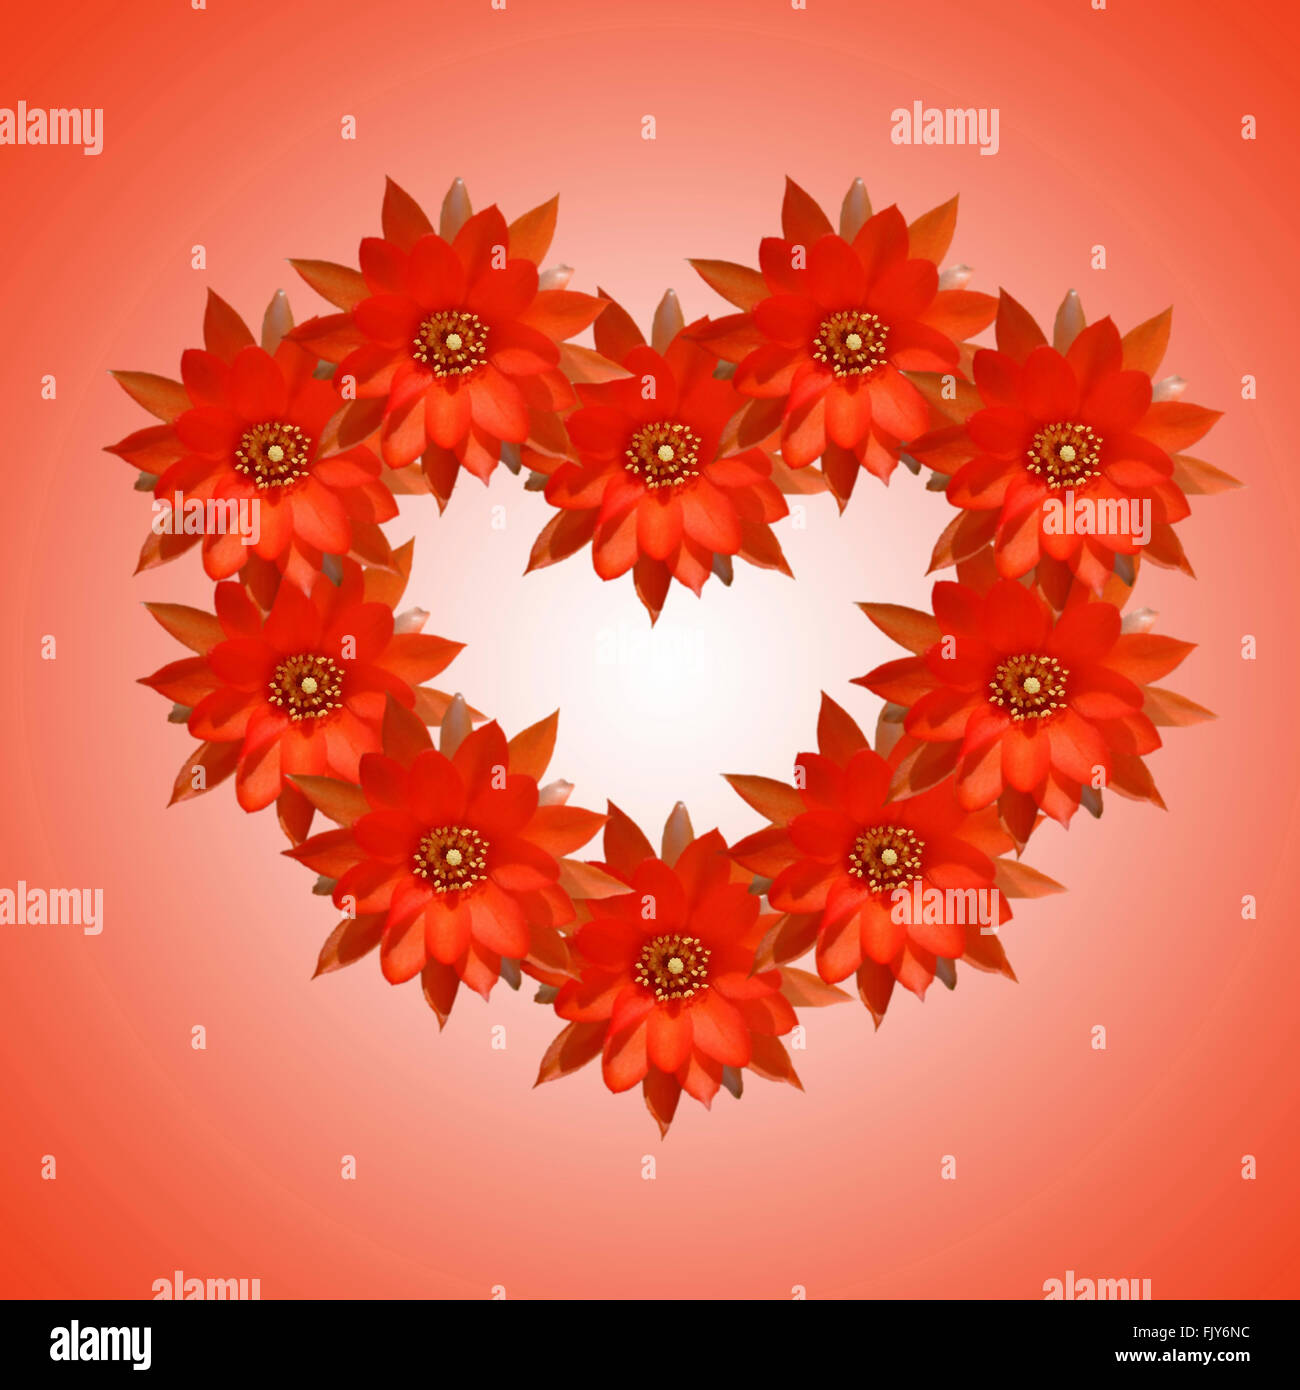 Origines de fleurs Saint-valentin carte Photo Stock